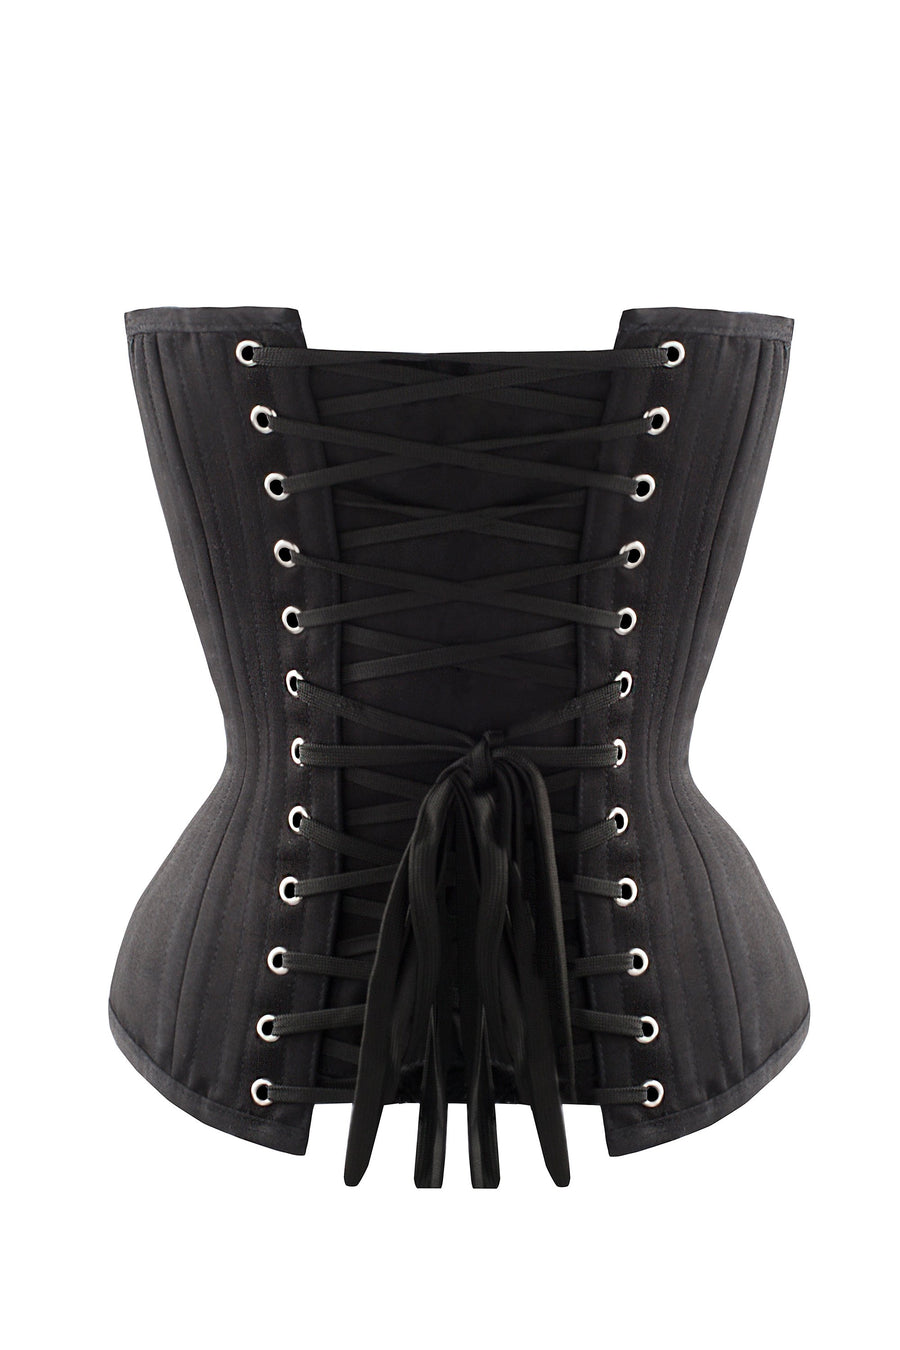 Black Cotton Twill Classic Overbust Waist Trainer With Hip Gores